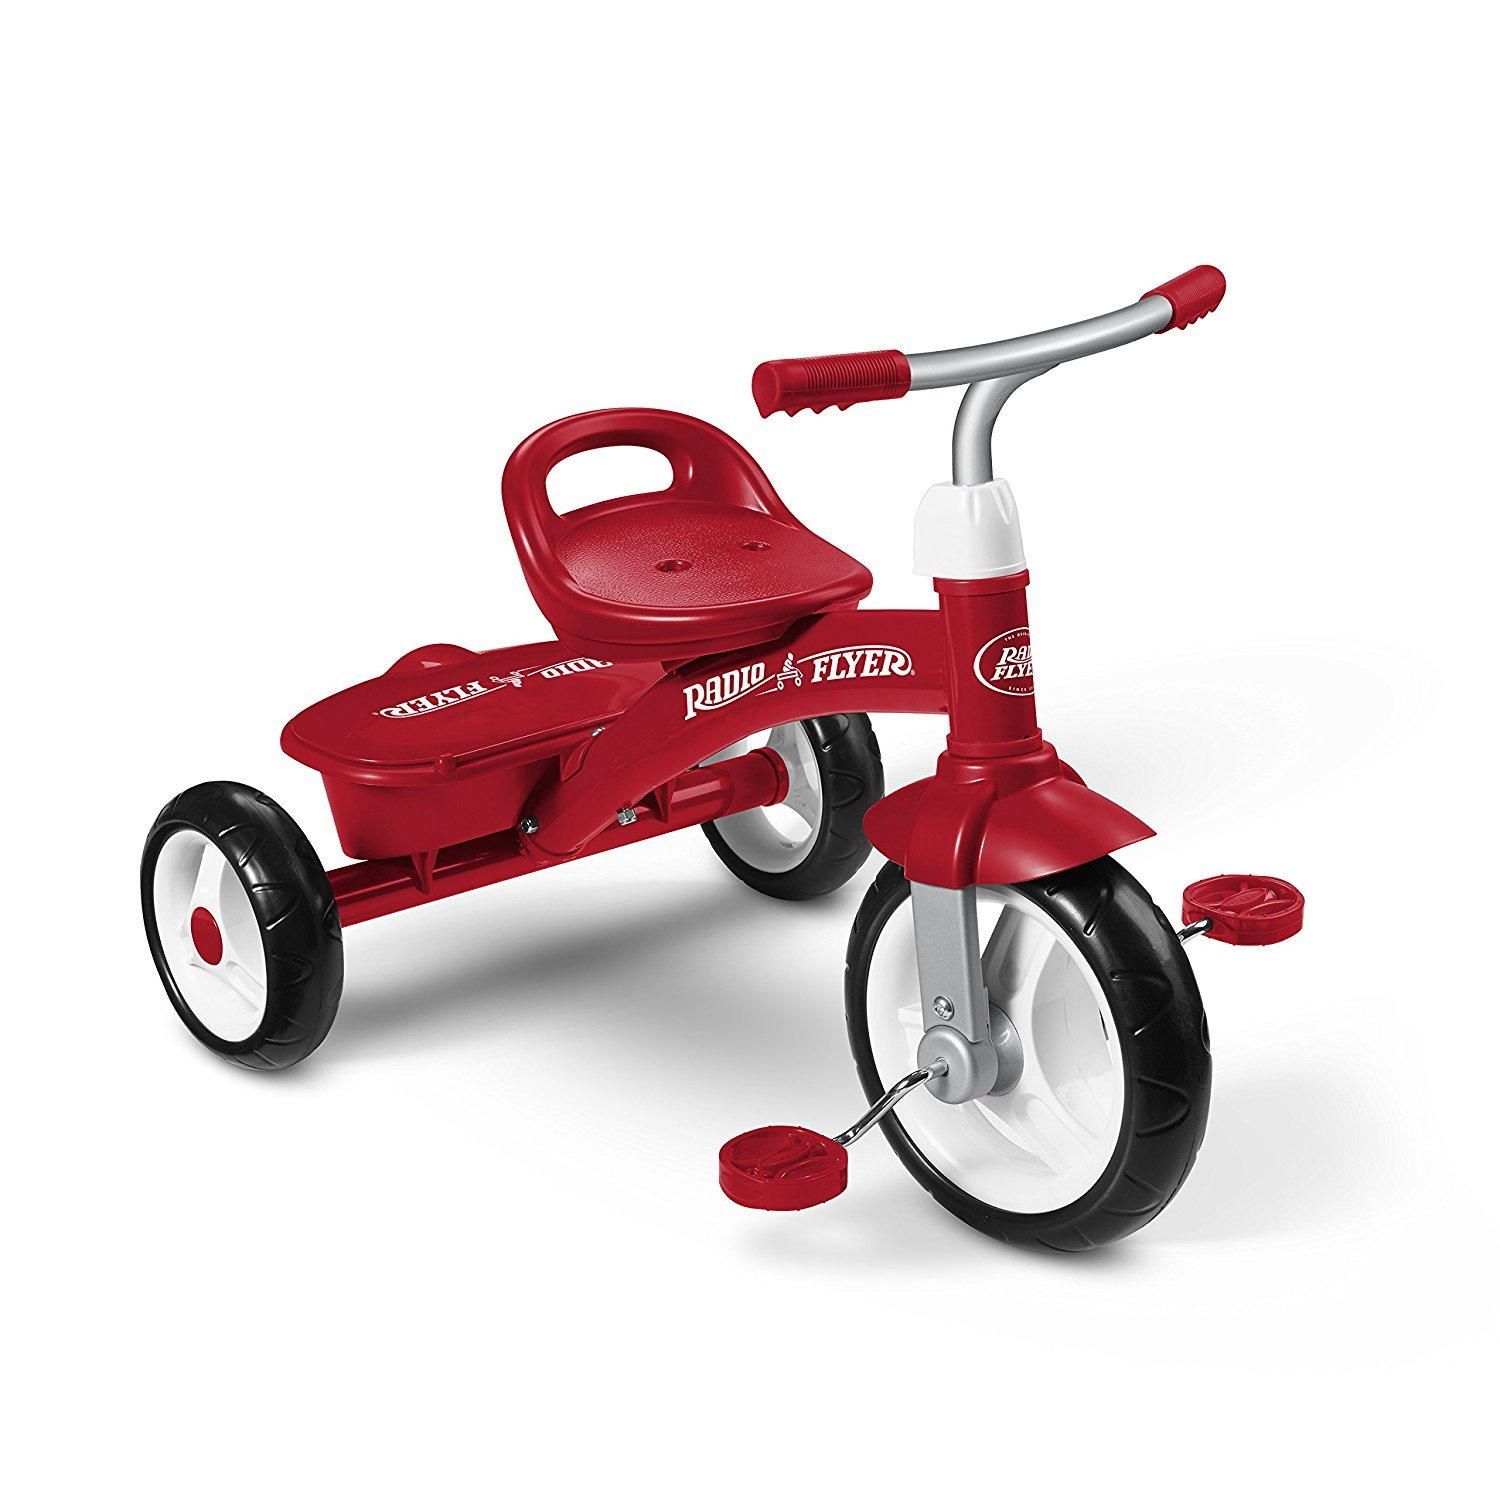 radio-flyer-red-rider-trike-for-baby